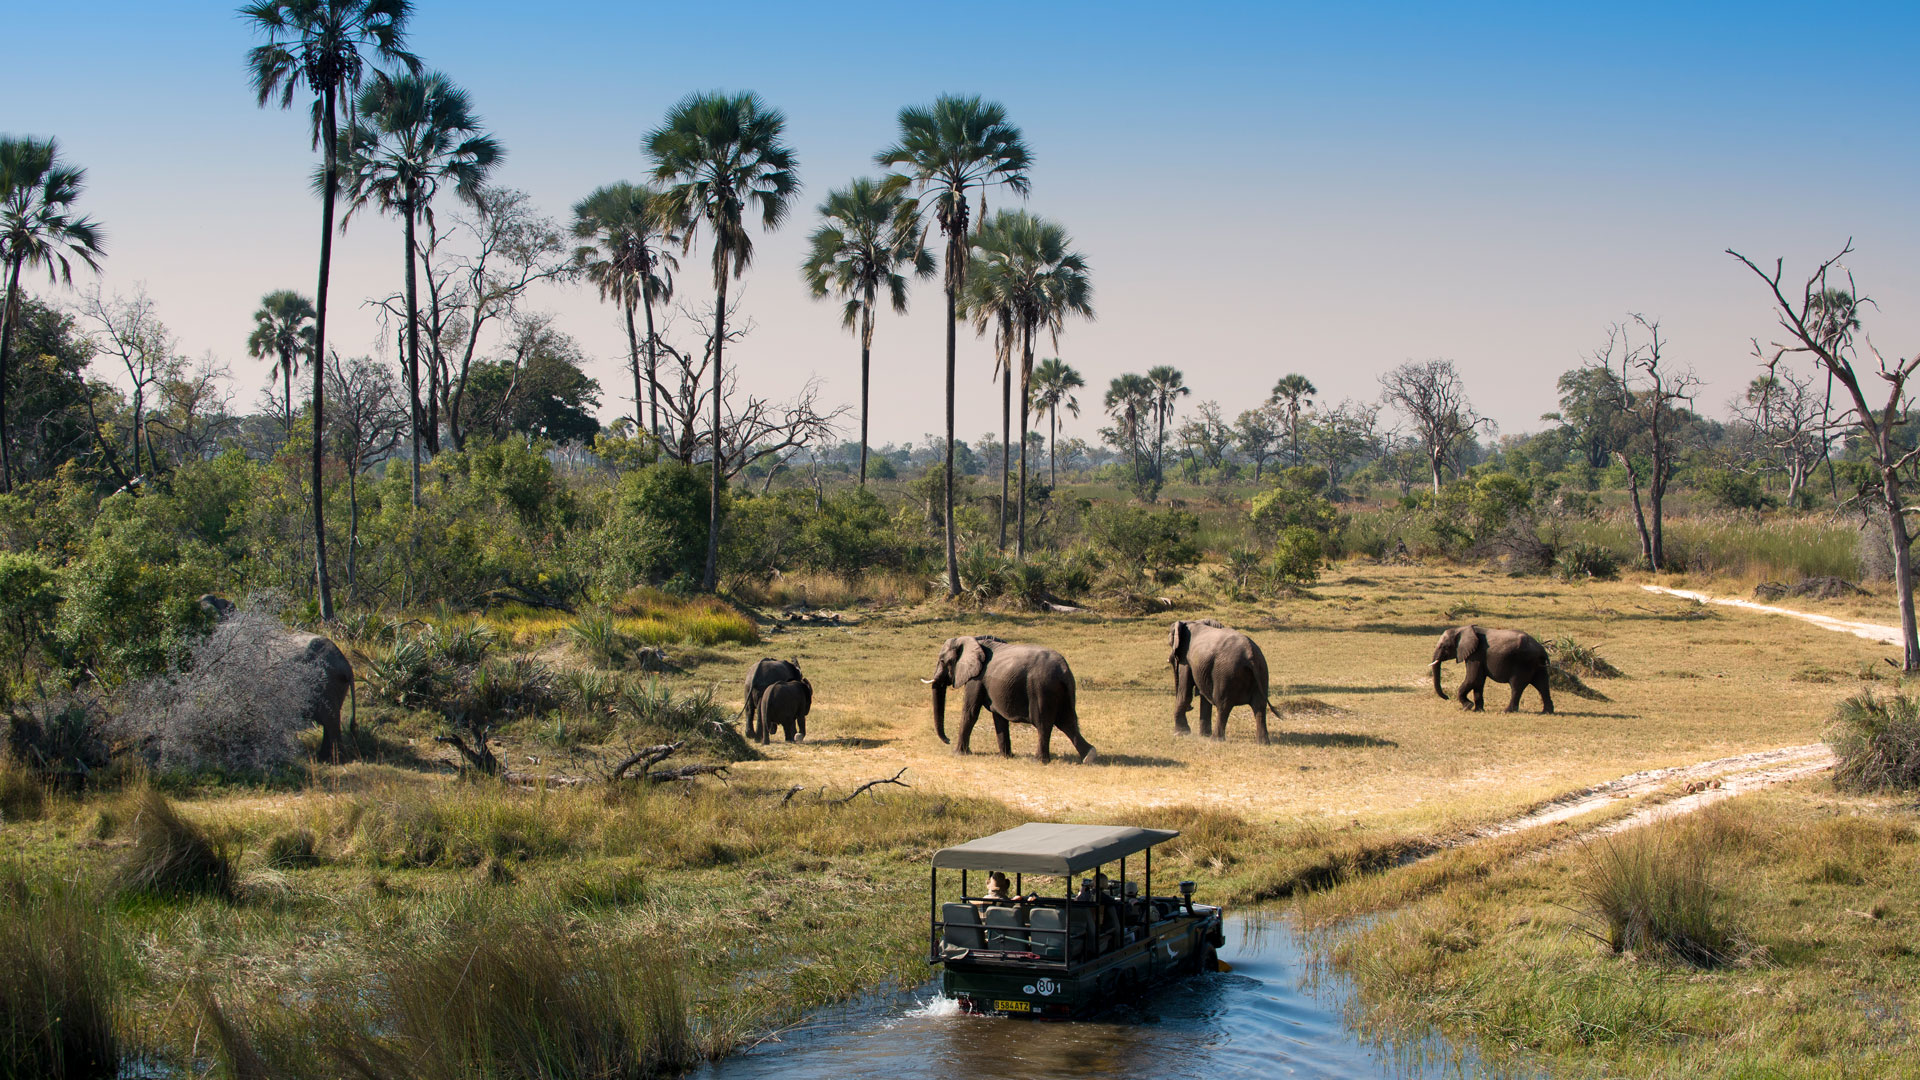 Herd Of Elephants Walking While Guests Cross Channel On A Safari Game Drive In Botswana